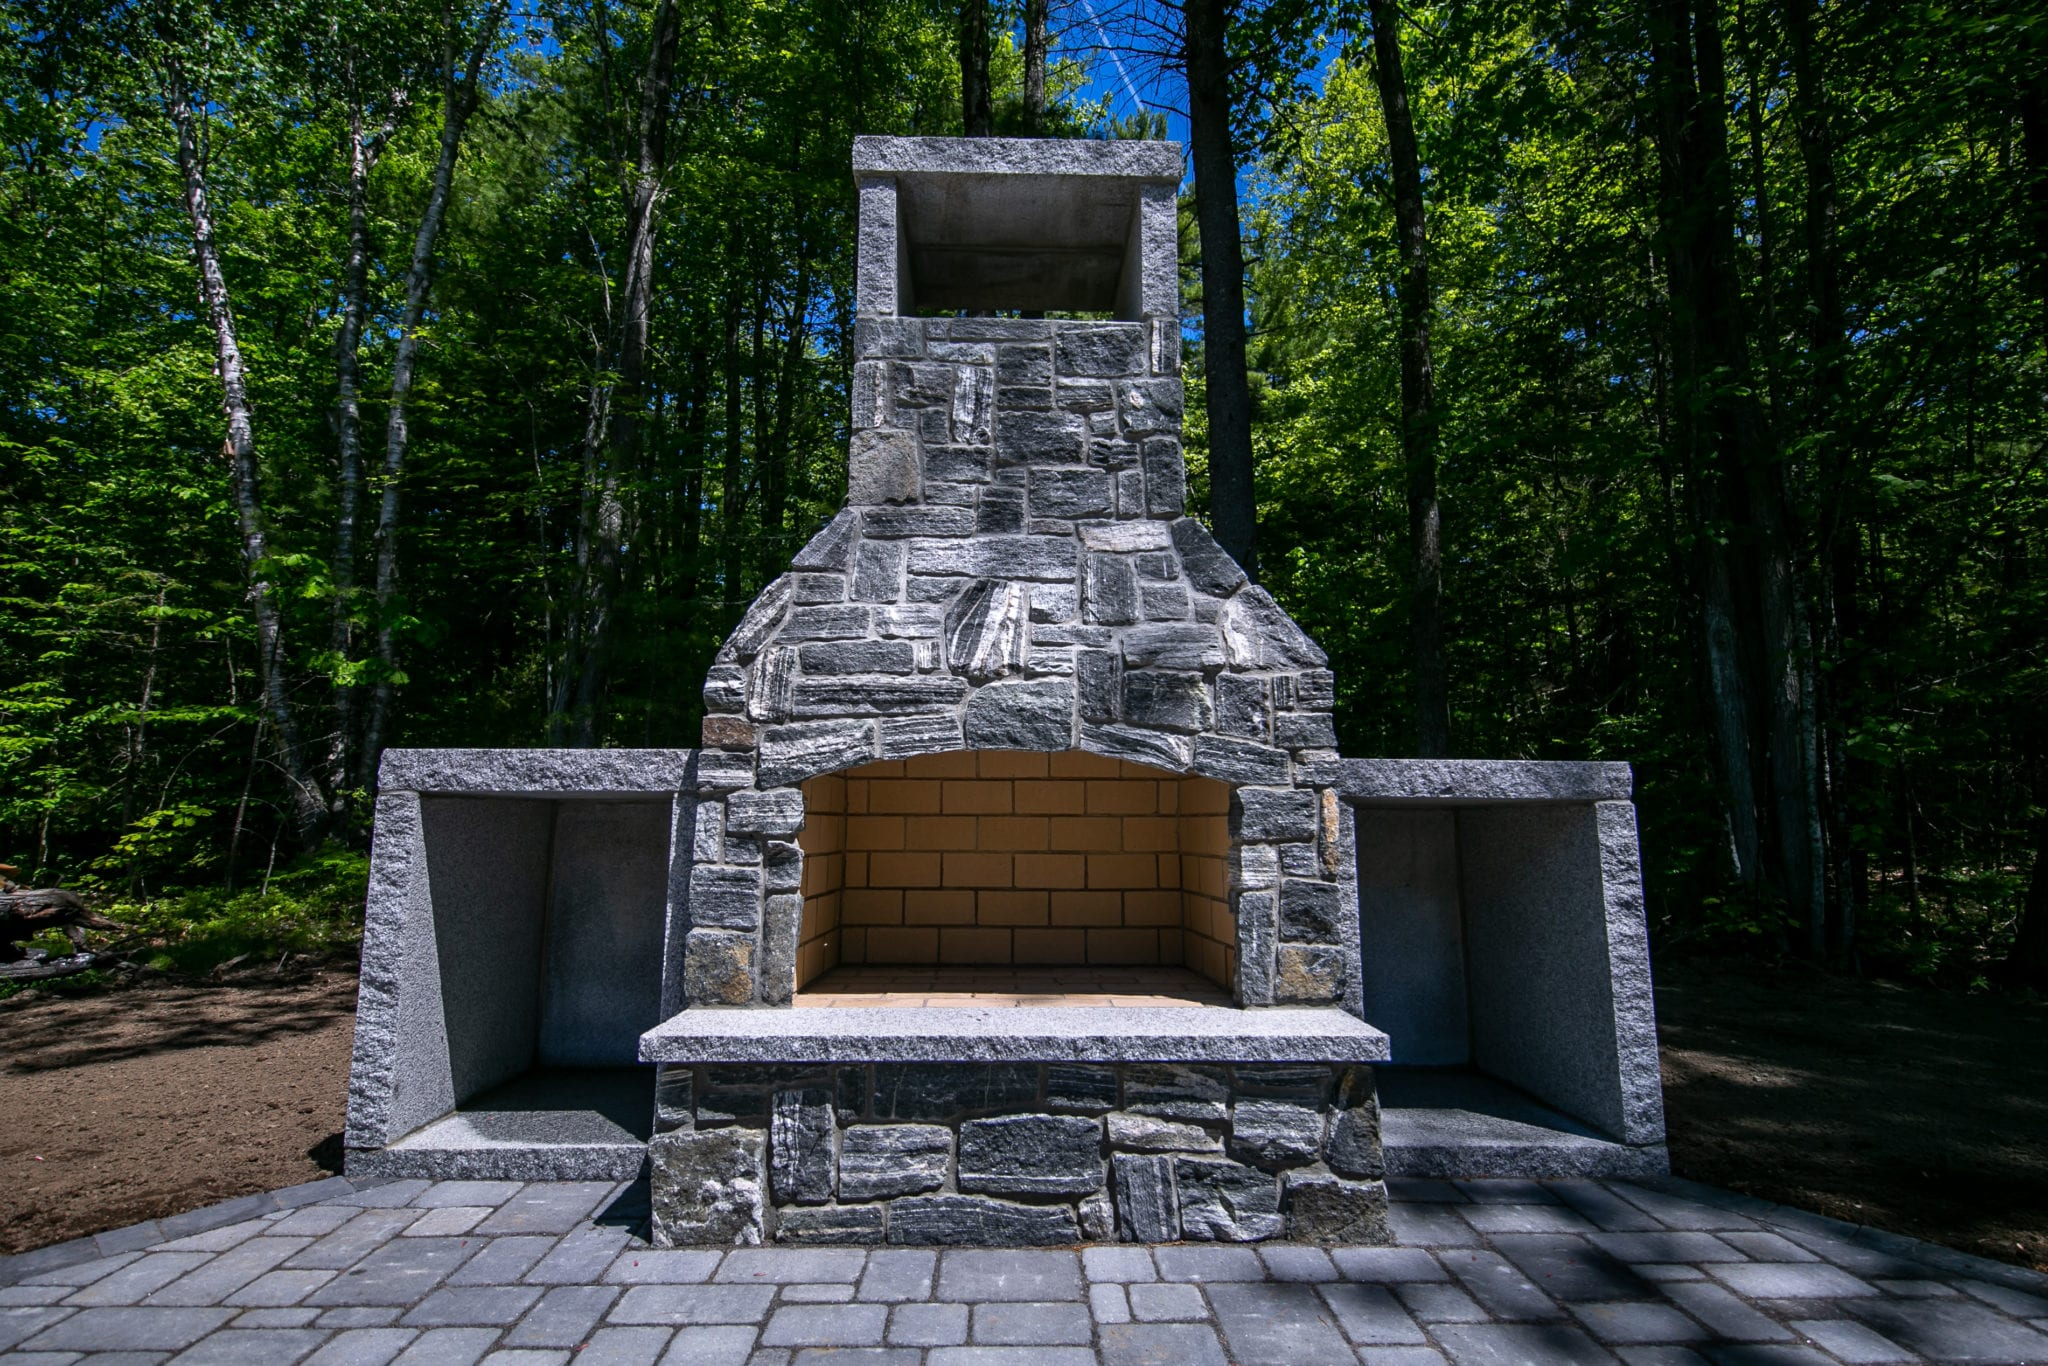 Delgato-American Mist-Outdoor Fireplace-fireplace-patio-Granite- Gagne&Son-pavers-landscaping